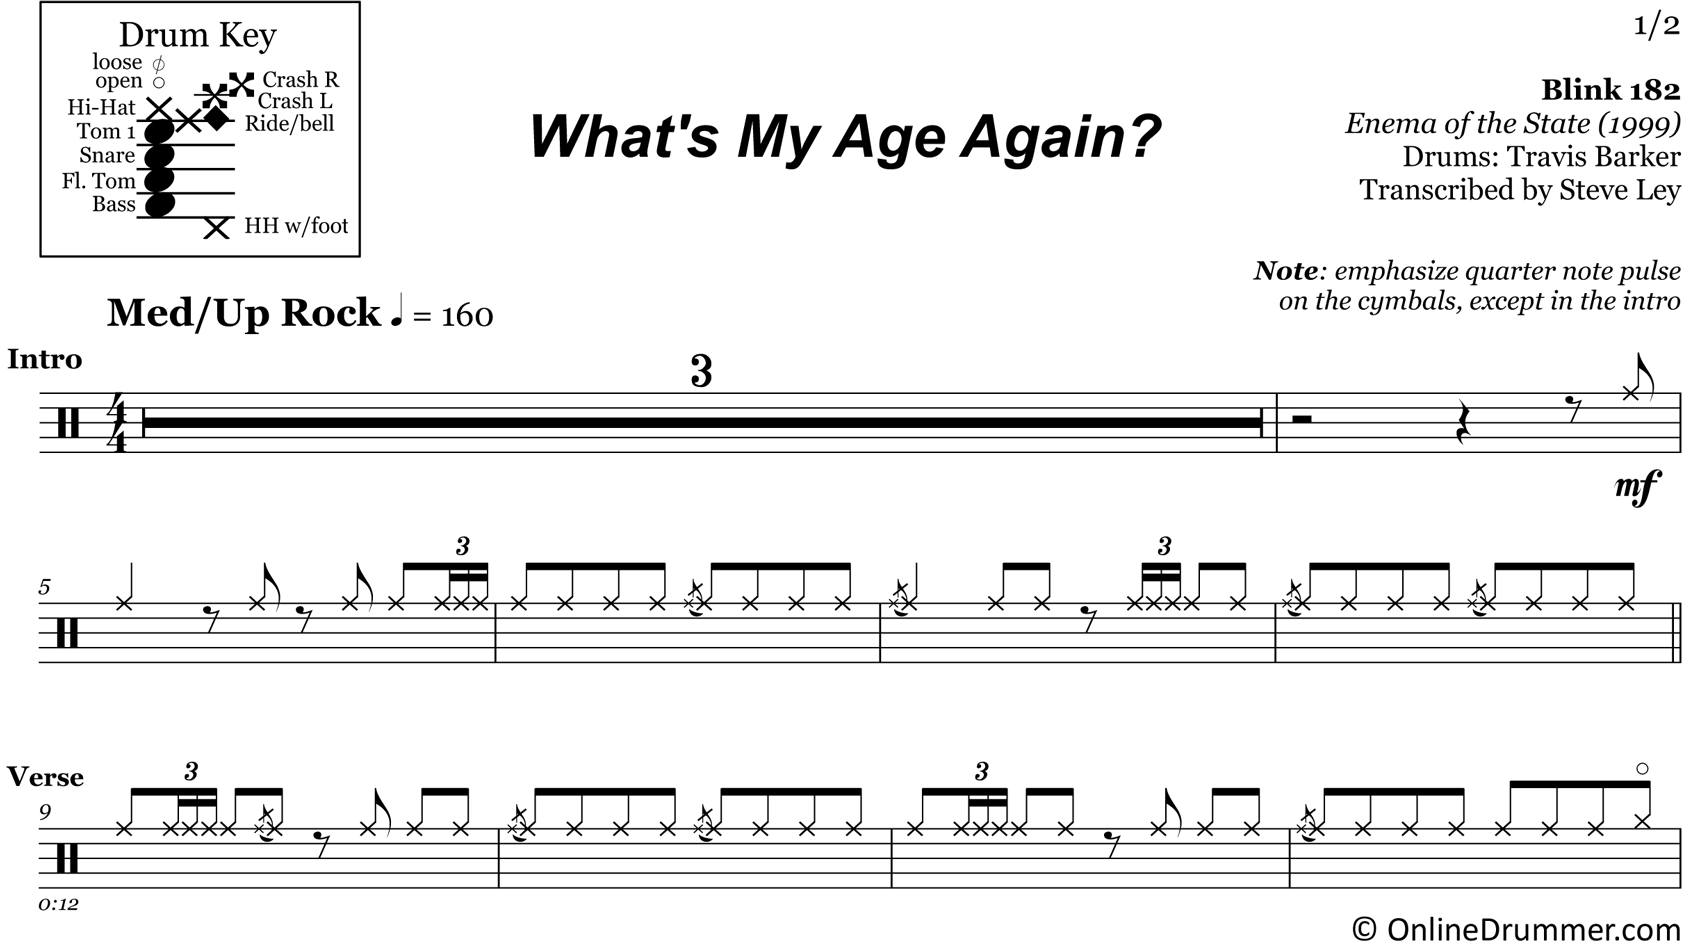 What's My Age Again? - Blink 182 - Drum Sheet Music